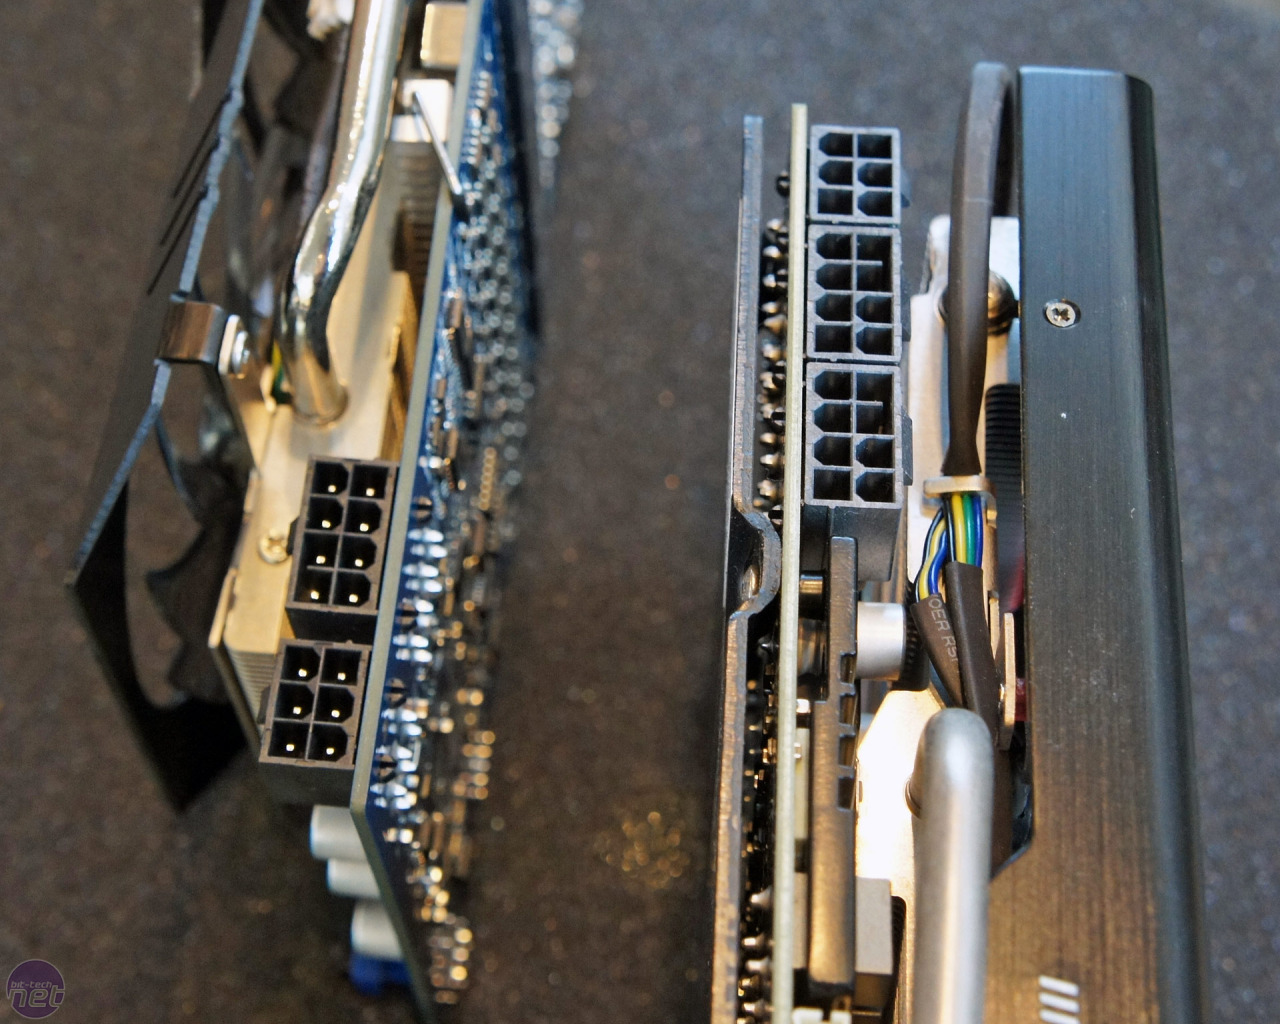 Gigabyte Geforce Gtx 480 Soc Preview Power Amplifier Extreme V Xii